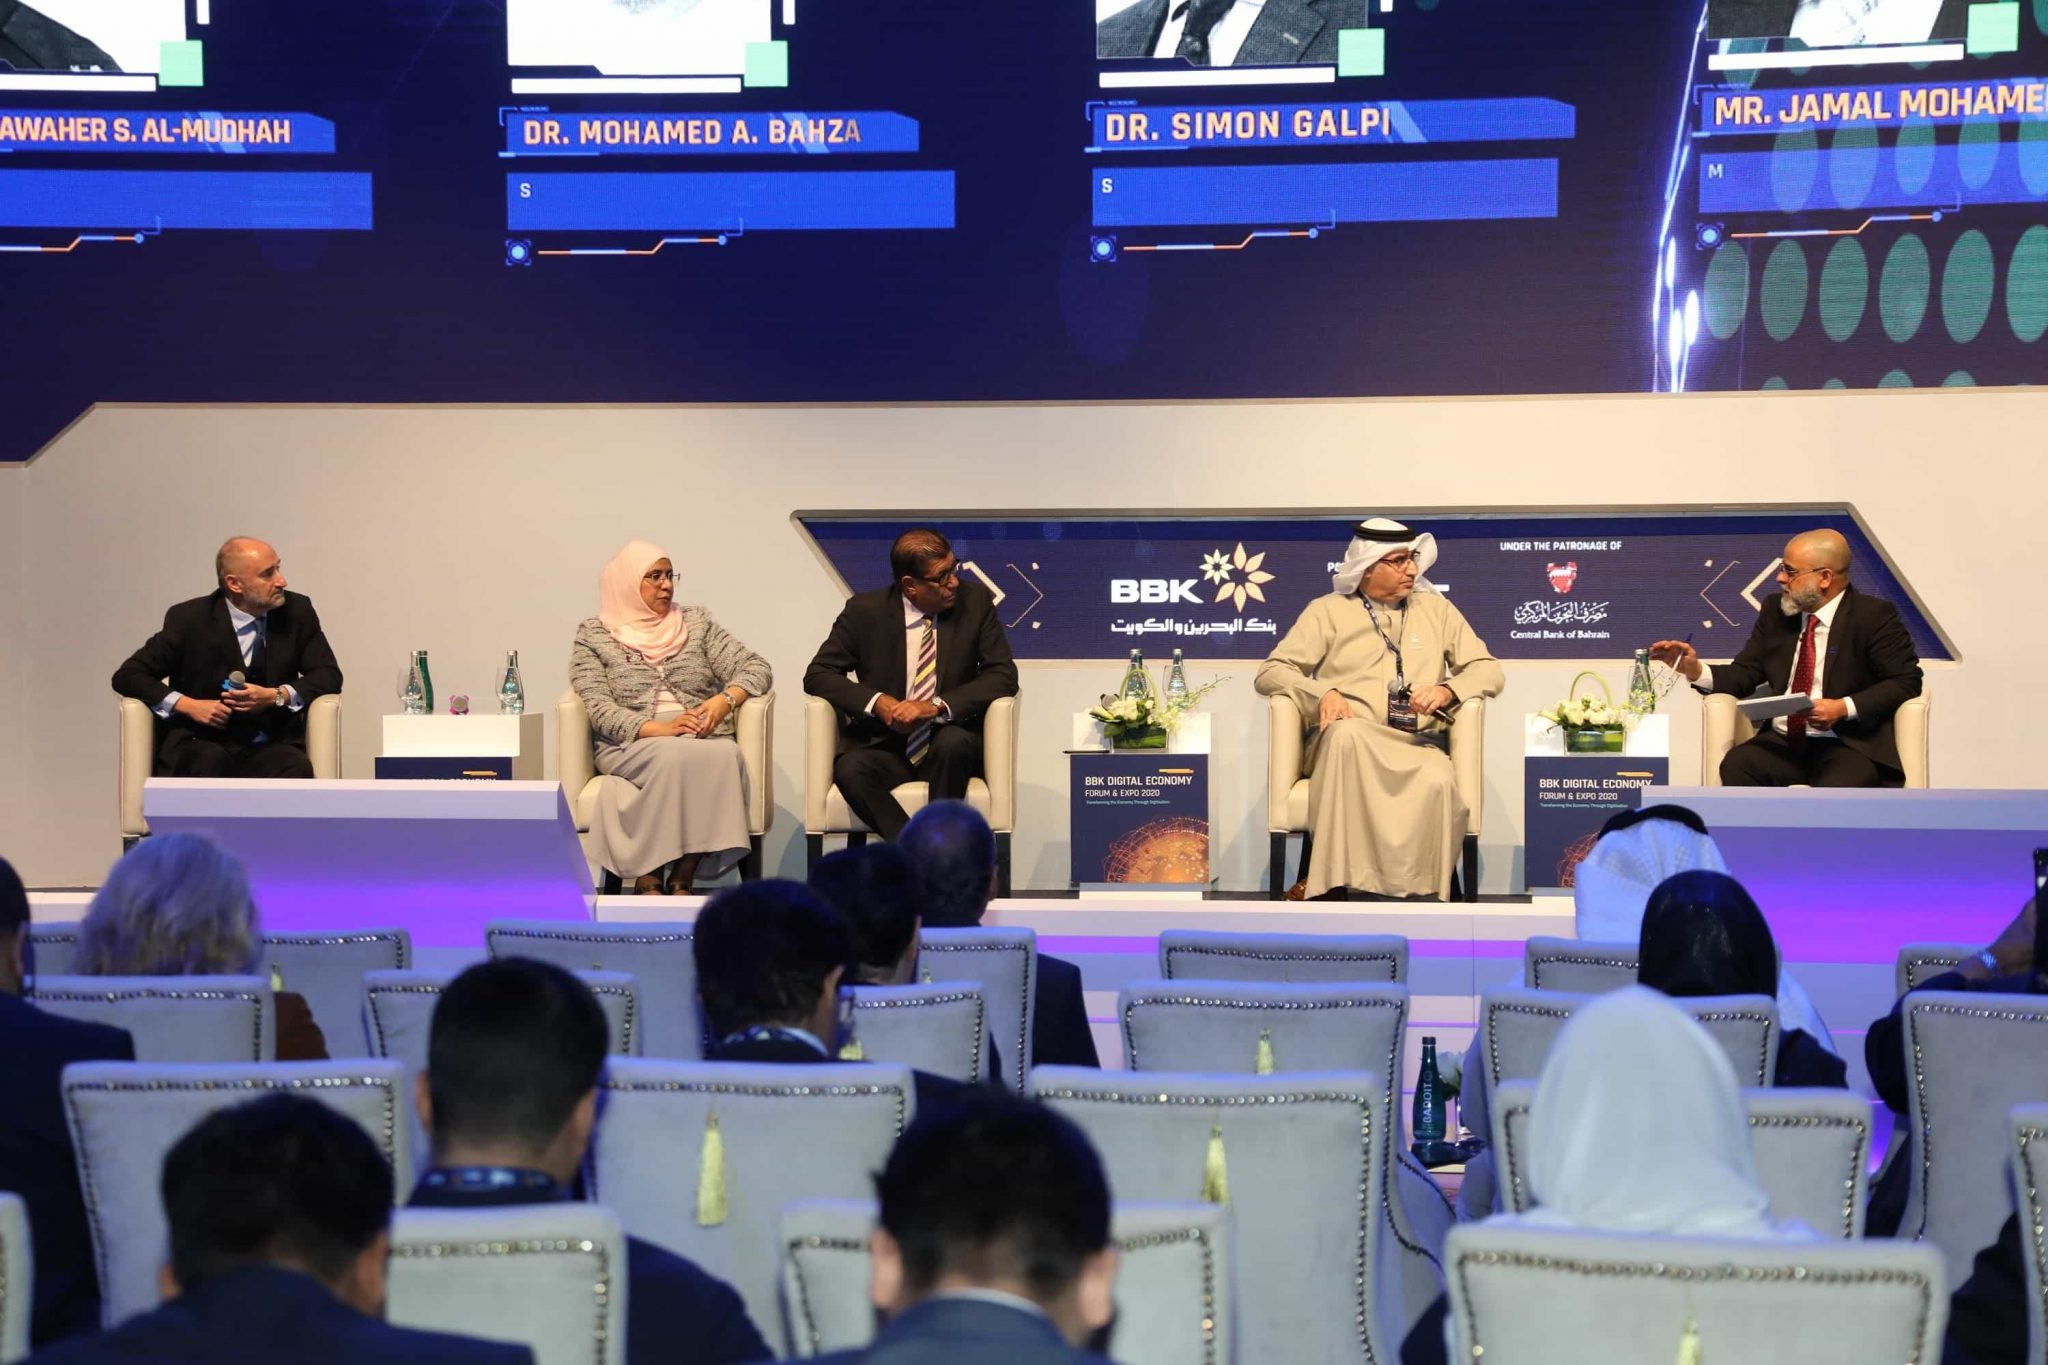 BBK's Digital Economy Forum & Expo was a smashing hit